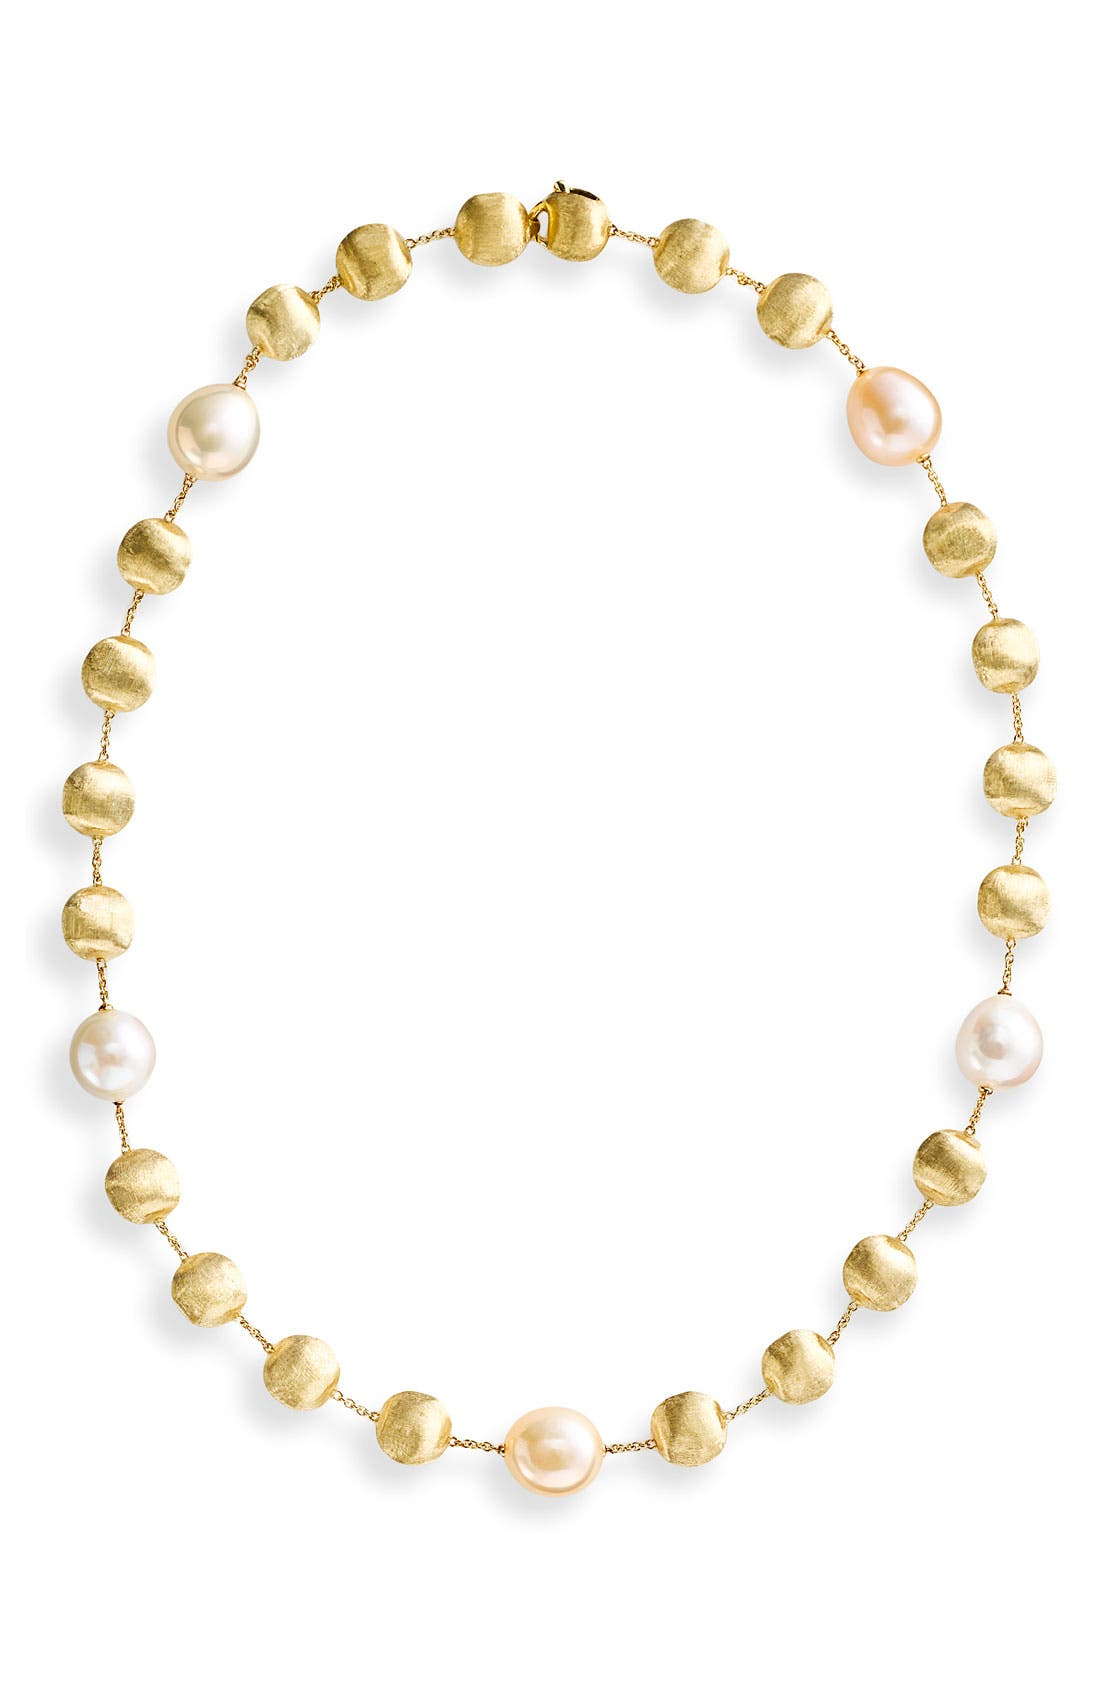 Main Image - Marco Bicego 'Africa' Gold & Diamond Necklace